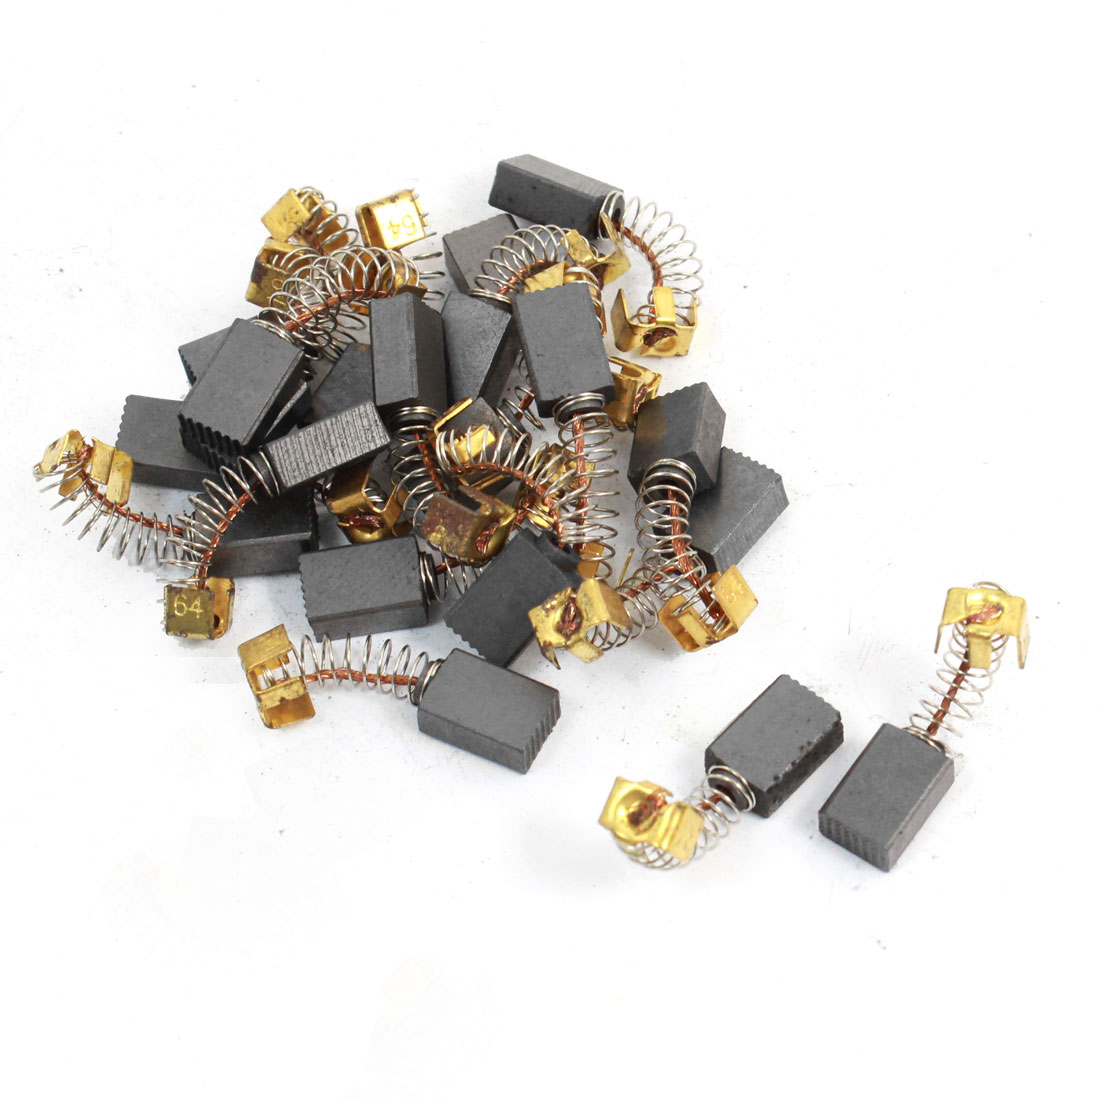 20 Pcs 11mm x 8mm x 5mm Carbon Brushes Black for Electric Drill Motor